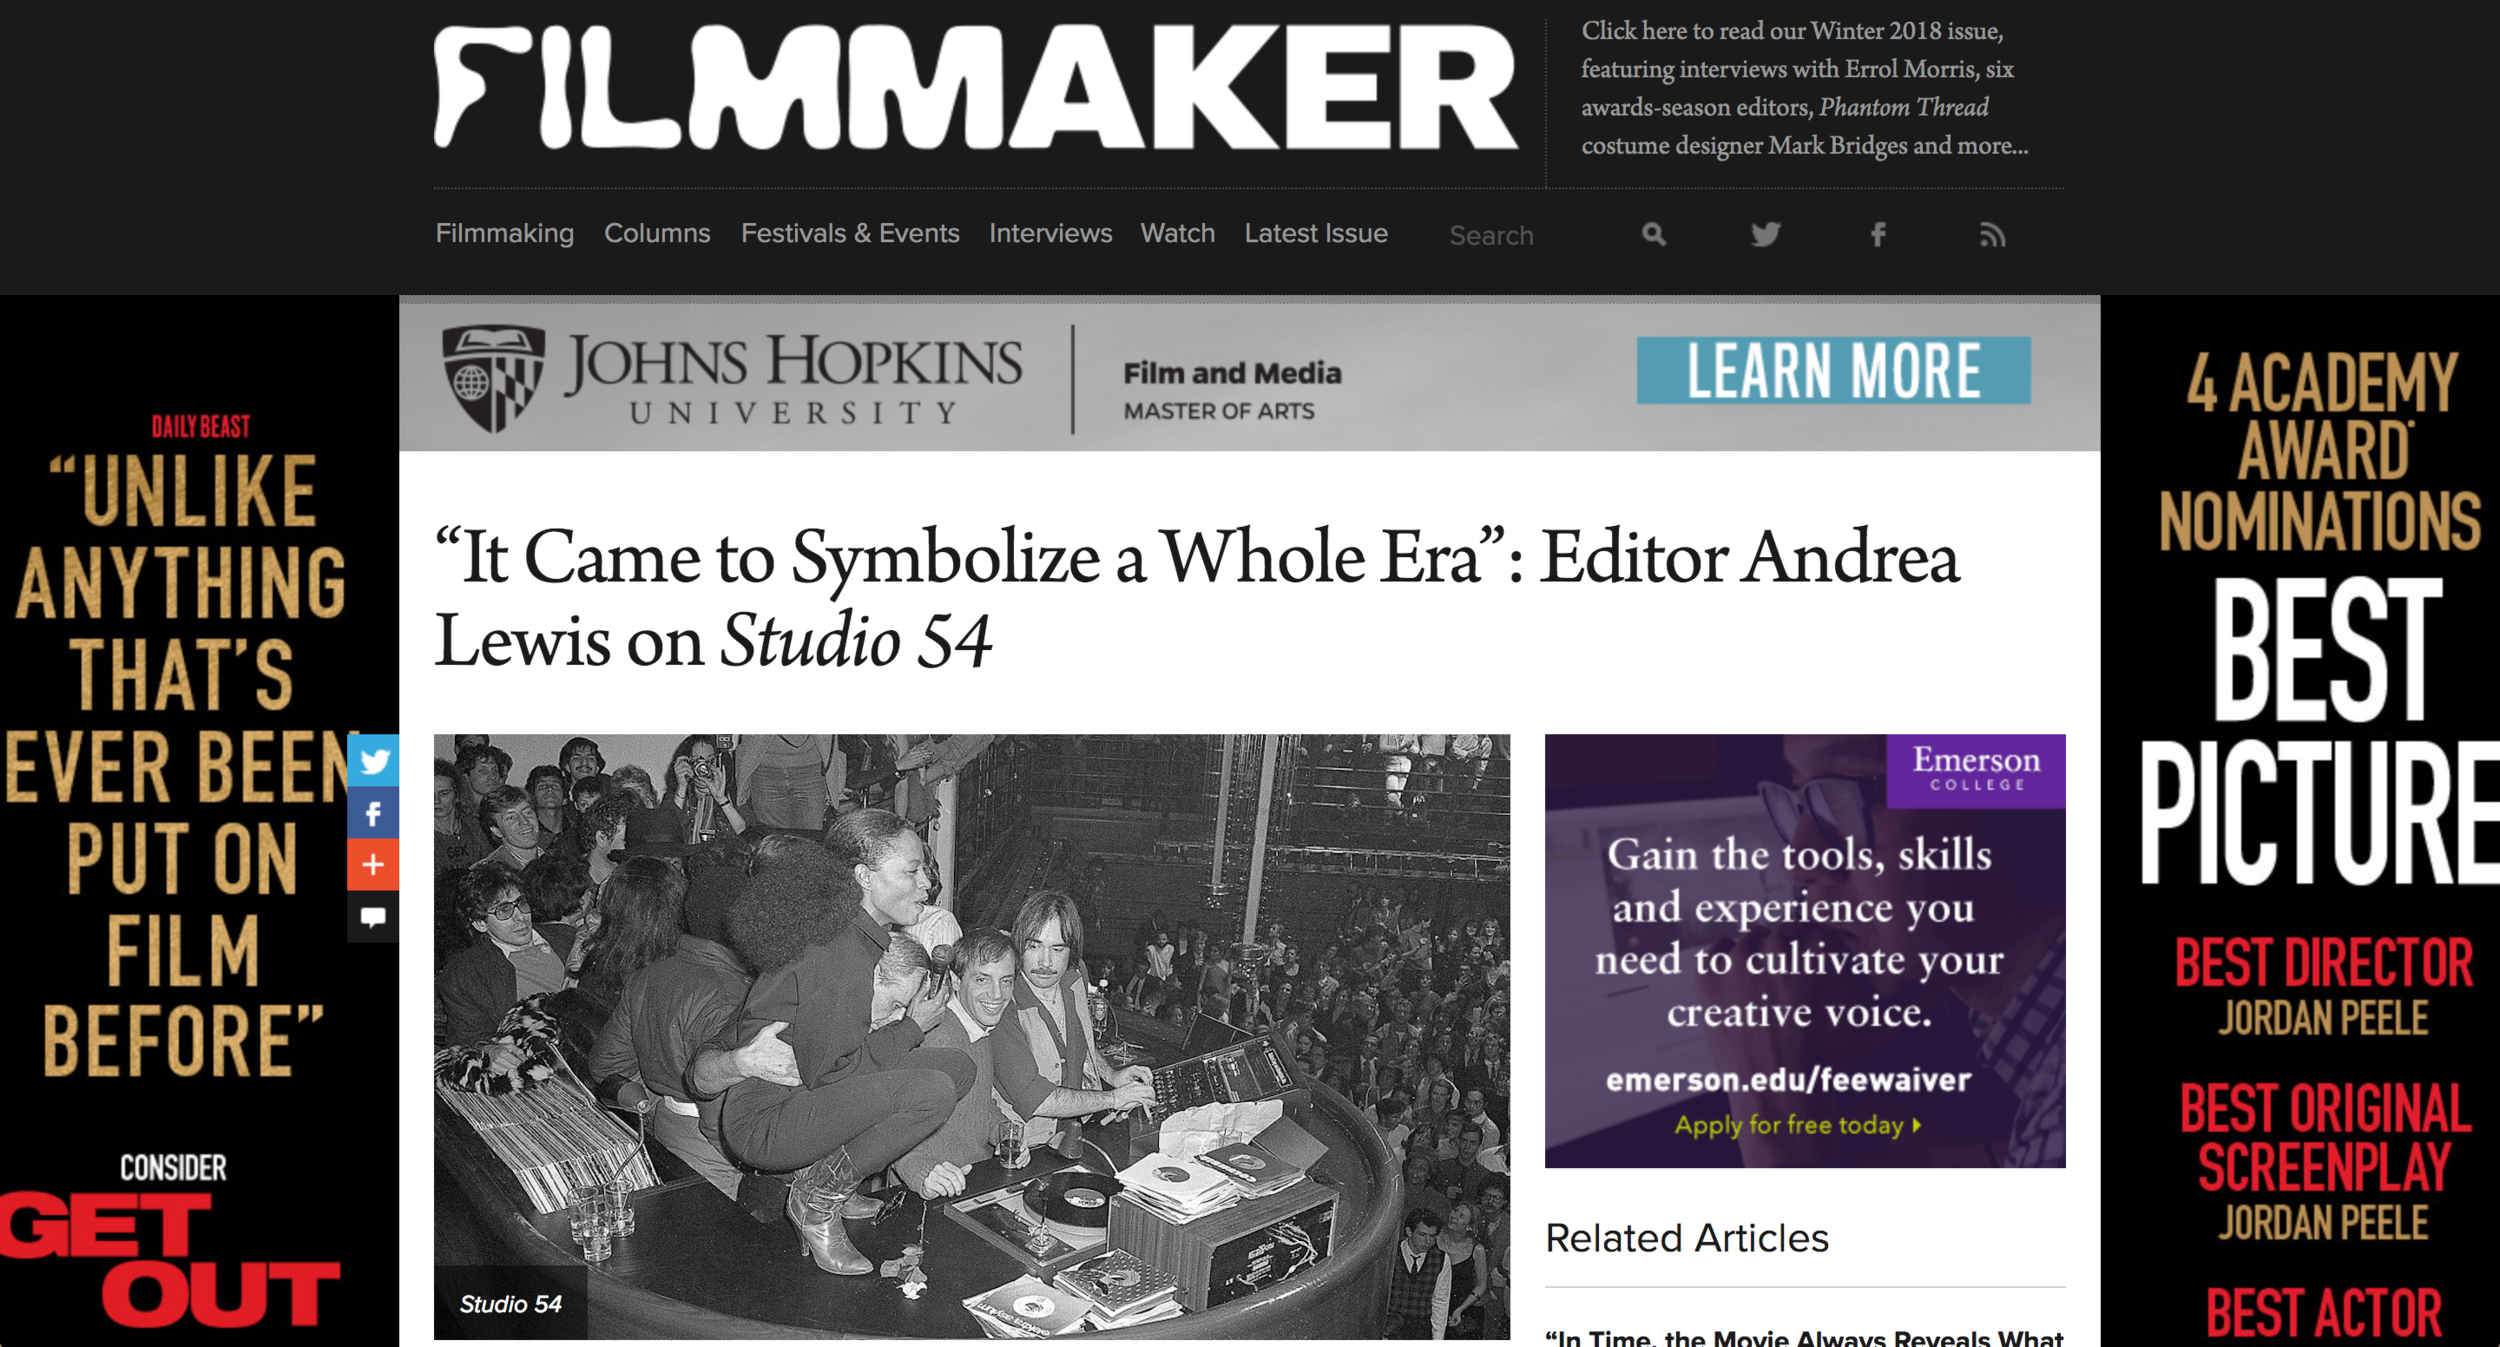 https://filmmakermagazine.com/104664-it-came-to-symbolize-a-whole-era-editor-andrea-lewis-on-studio-54/#.Wosl64JG3dS